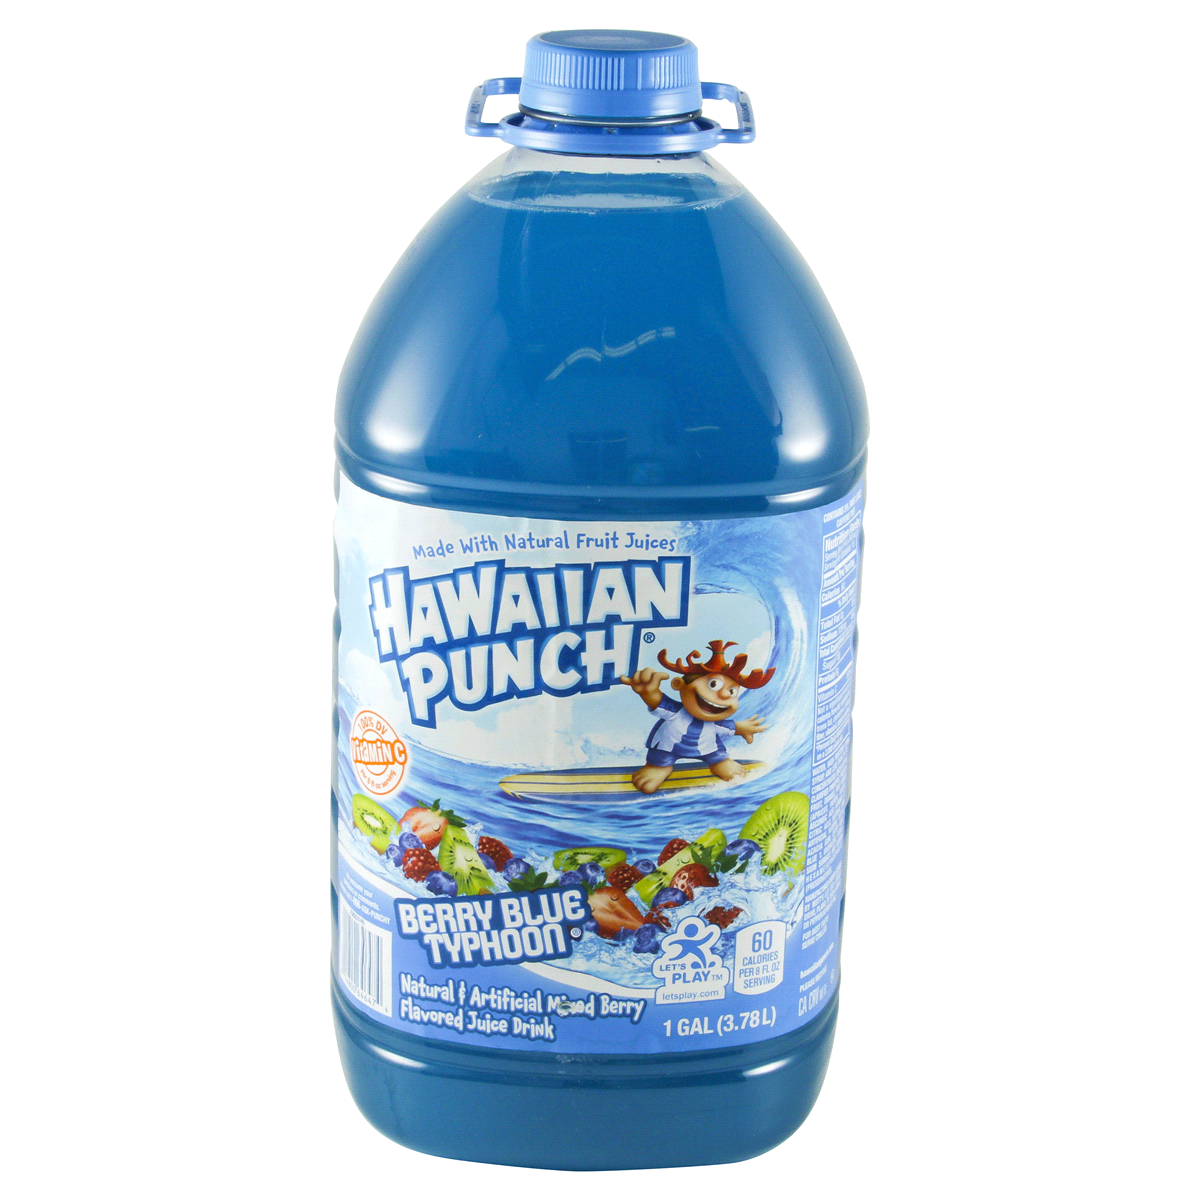 HAWAIIAN PUNCH BLUE BERRY TYPHOON 128 OZ 4 COUNT***SHIP TO ORDER BY NOON ON MONDAY'S ARRIVING THE FOLLOWING MONDAY FOR DELIVERY***